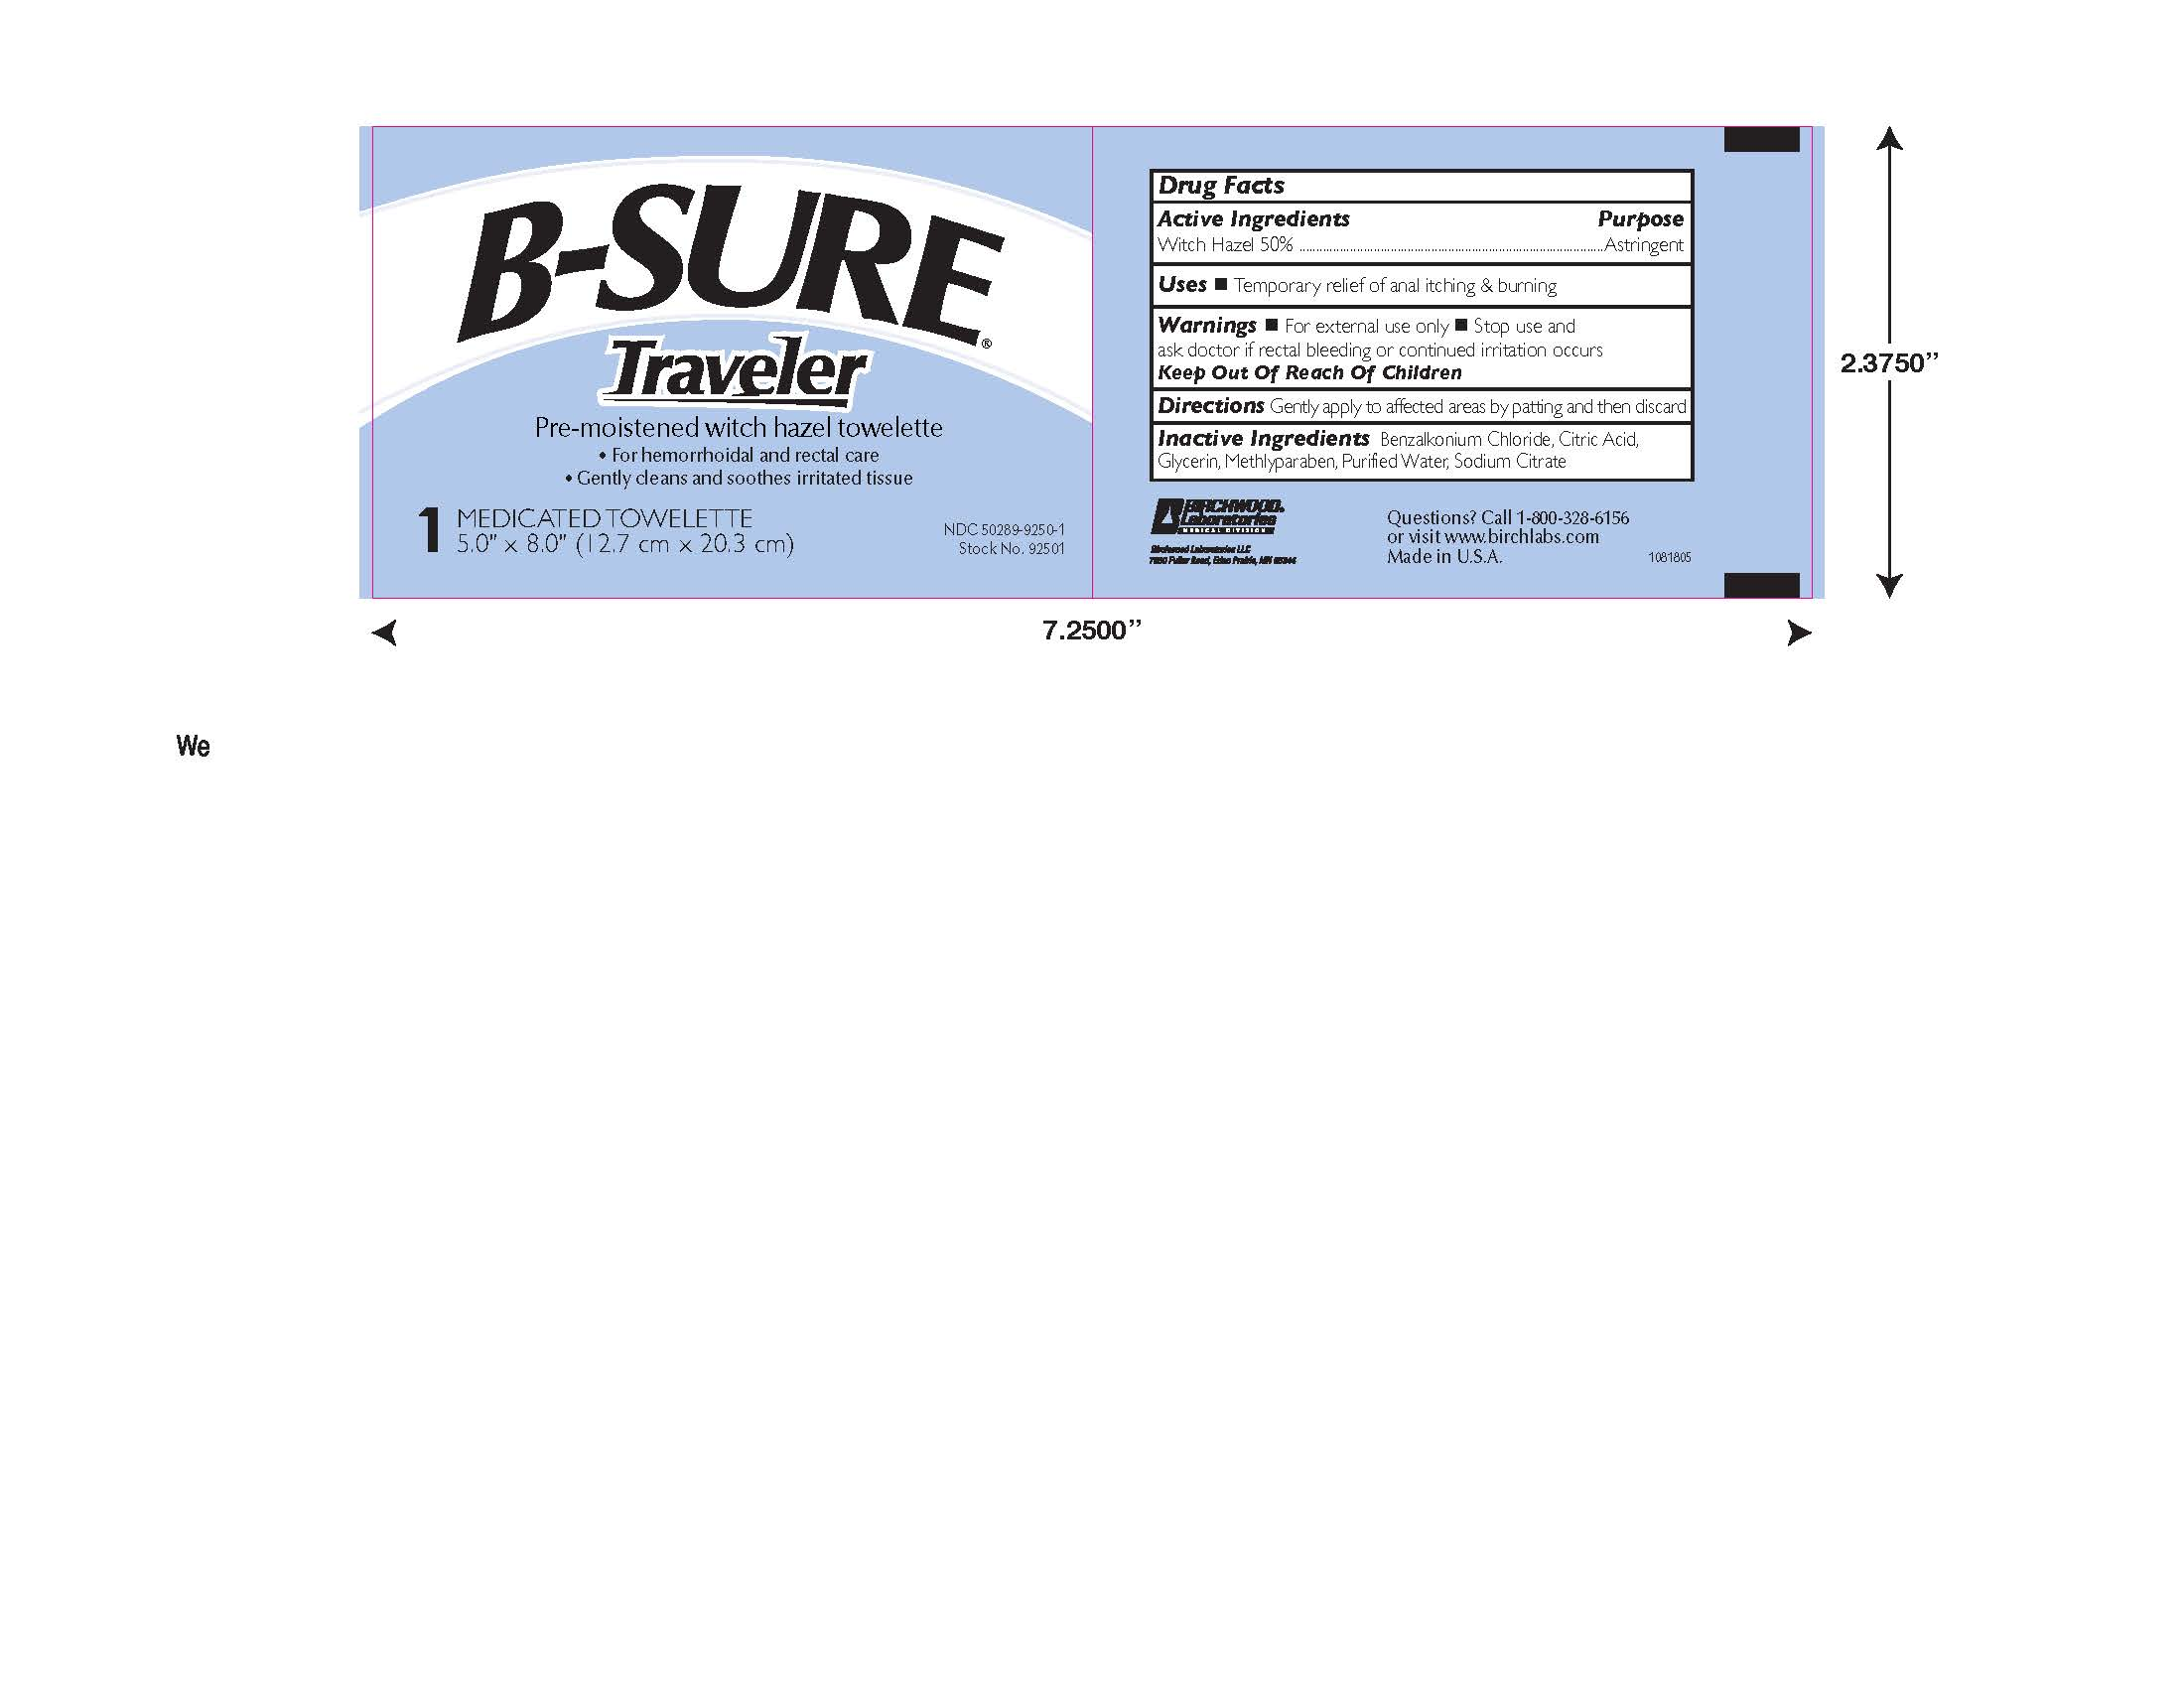 B-SURE Packet